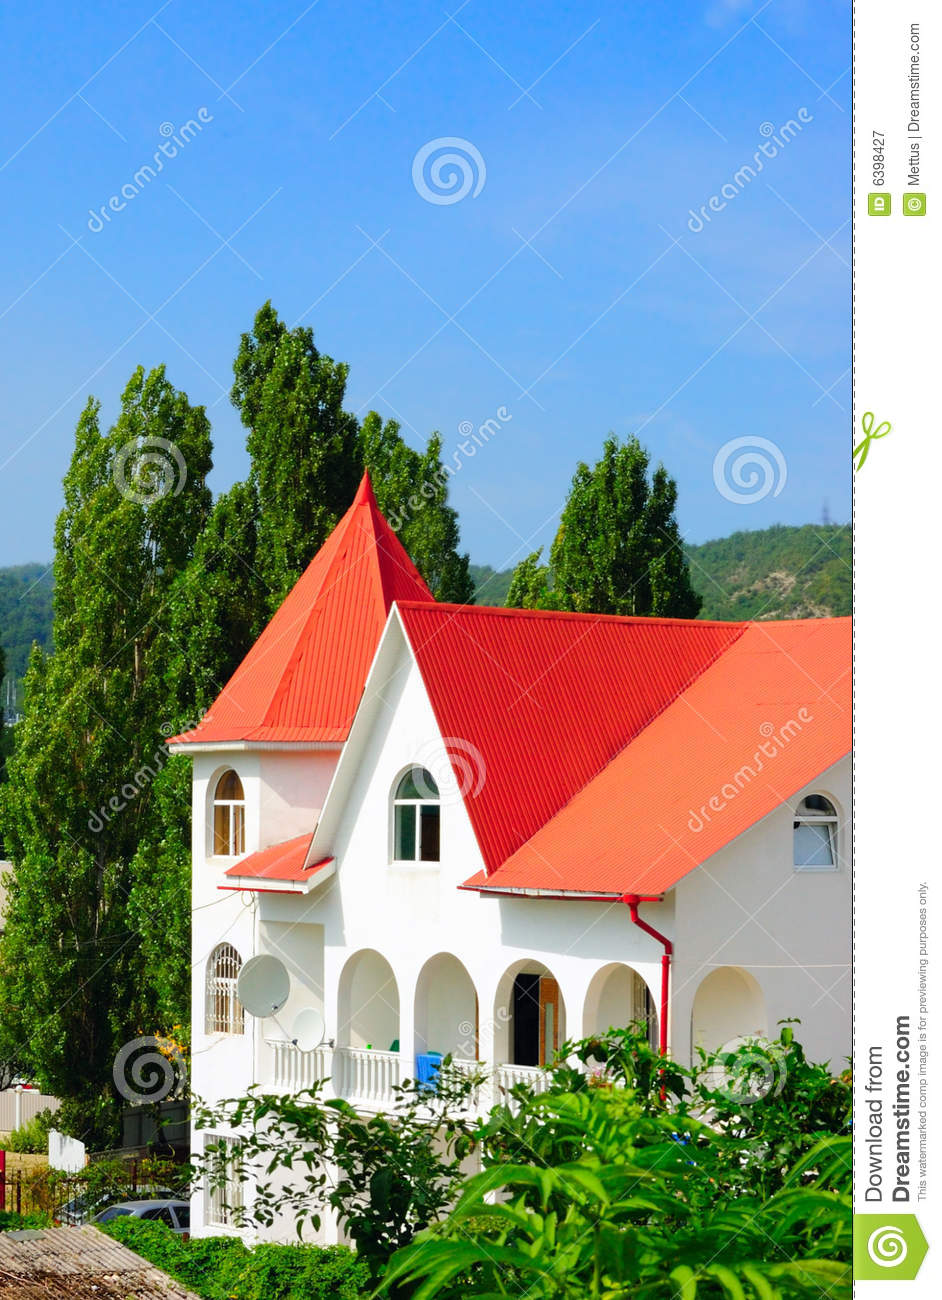 Colorful modern country house royalty free stock for Country house online